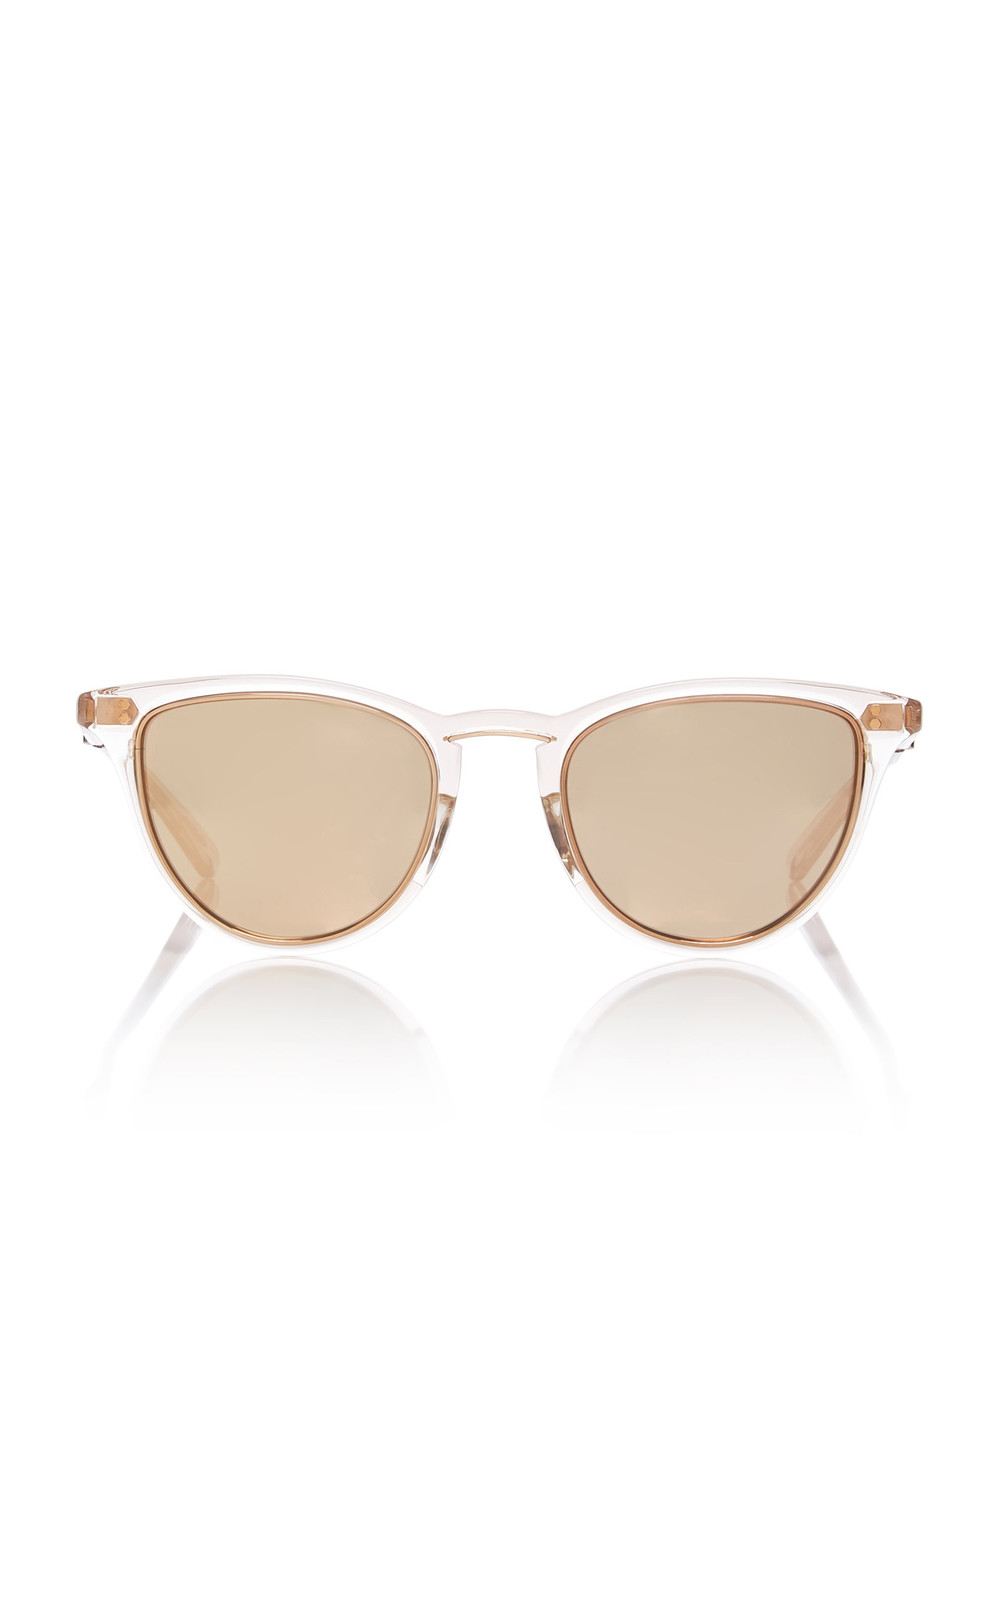 Mr. Leight Runyon Acetate Cat-Eye Sunglasses in pink